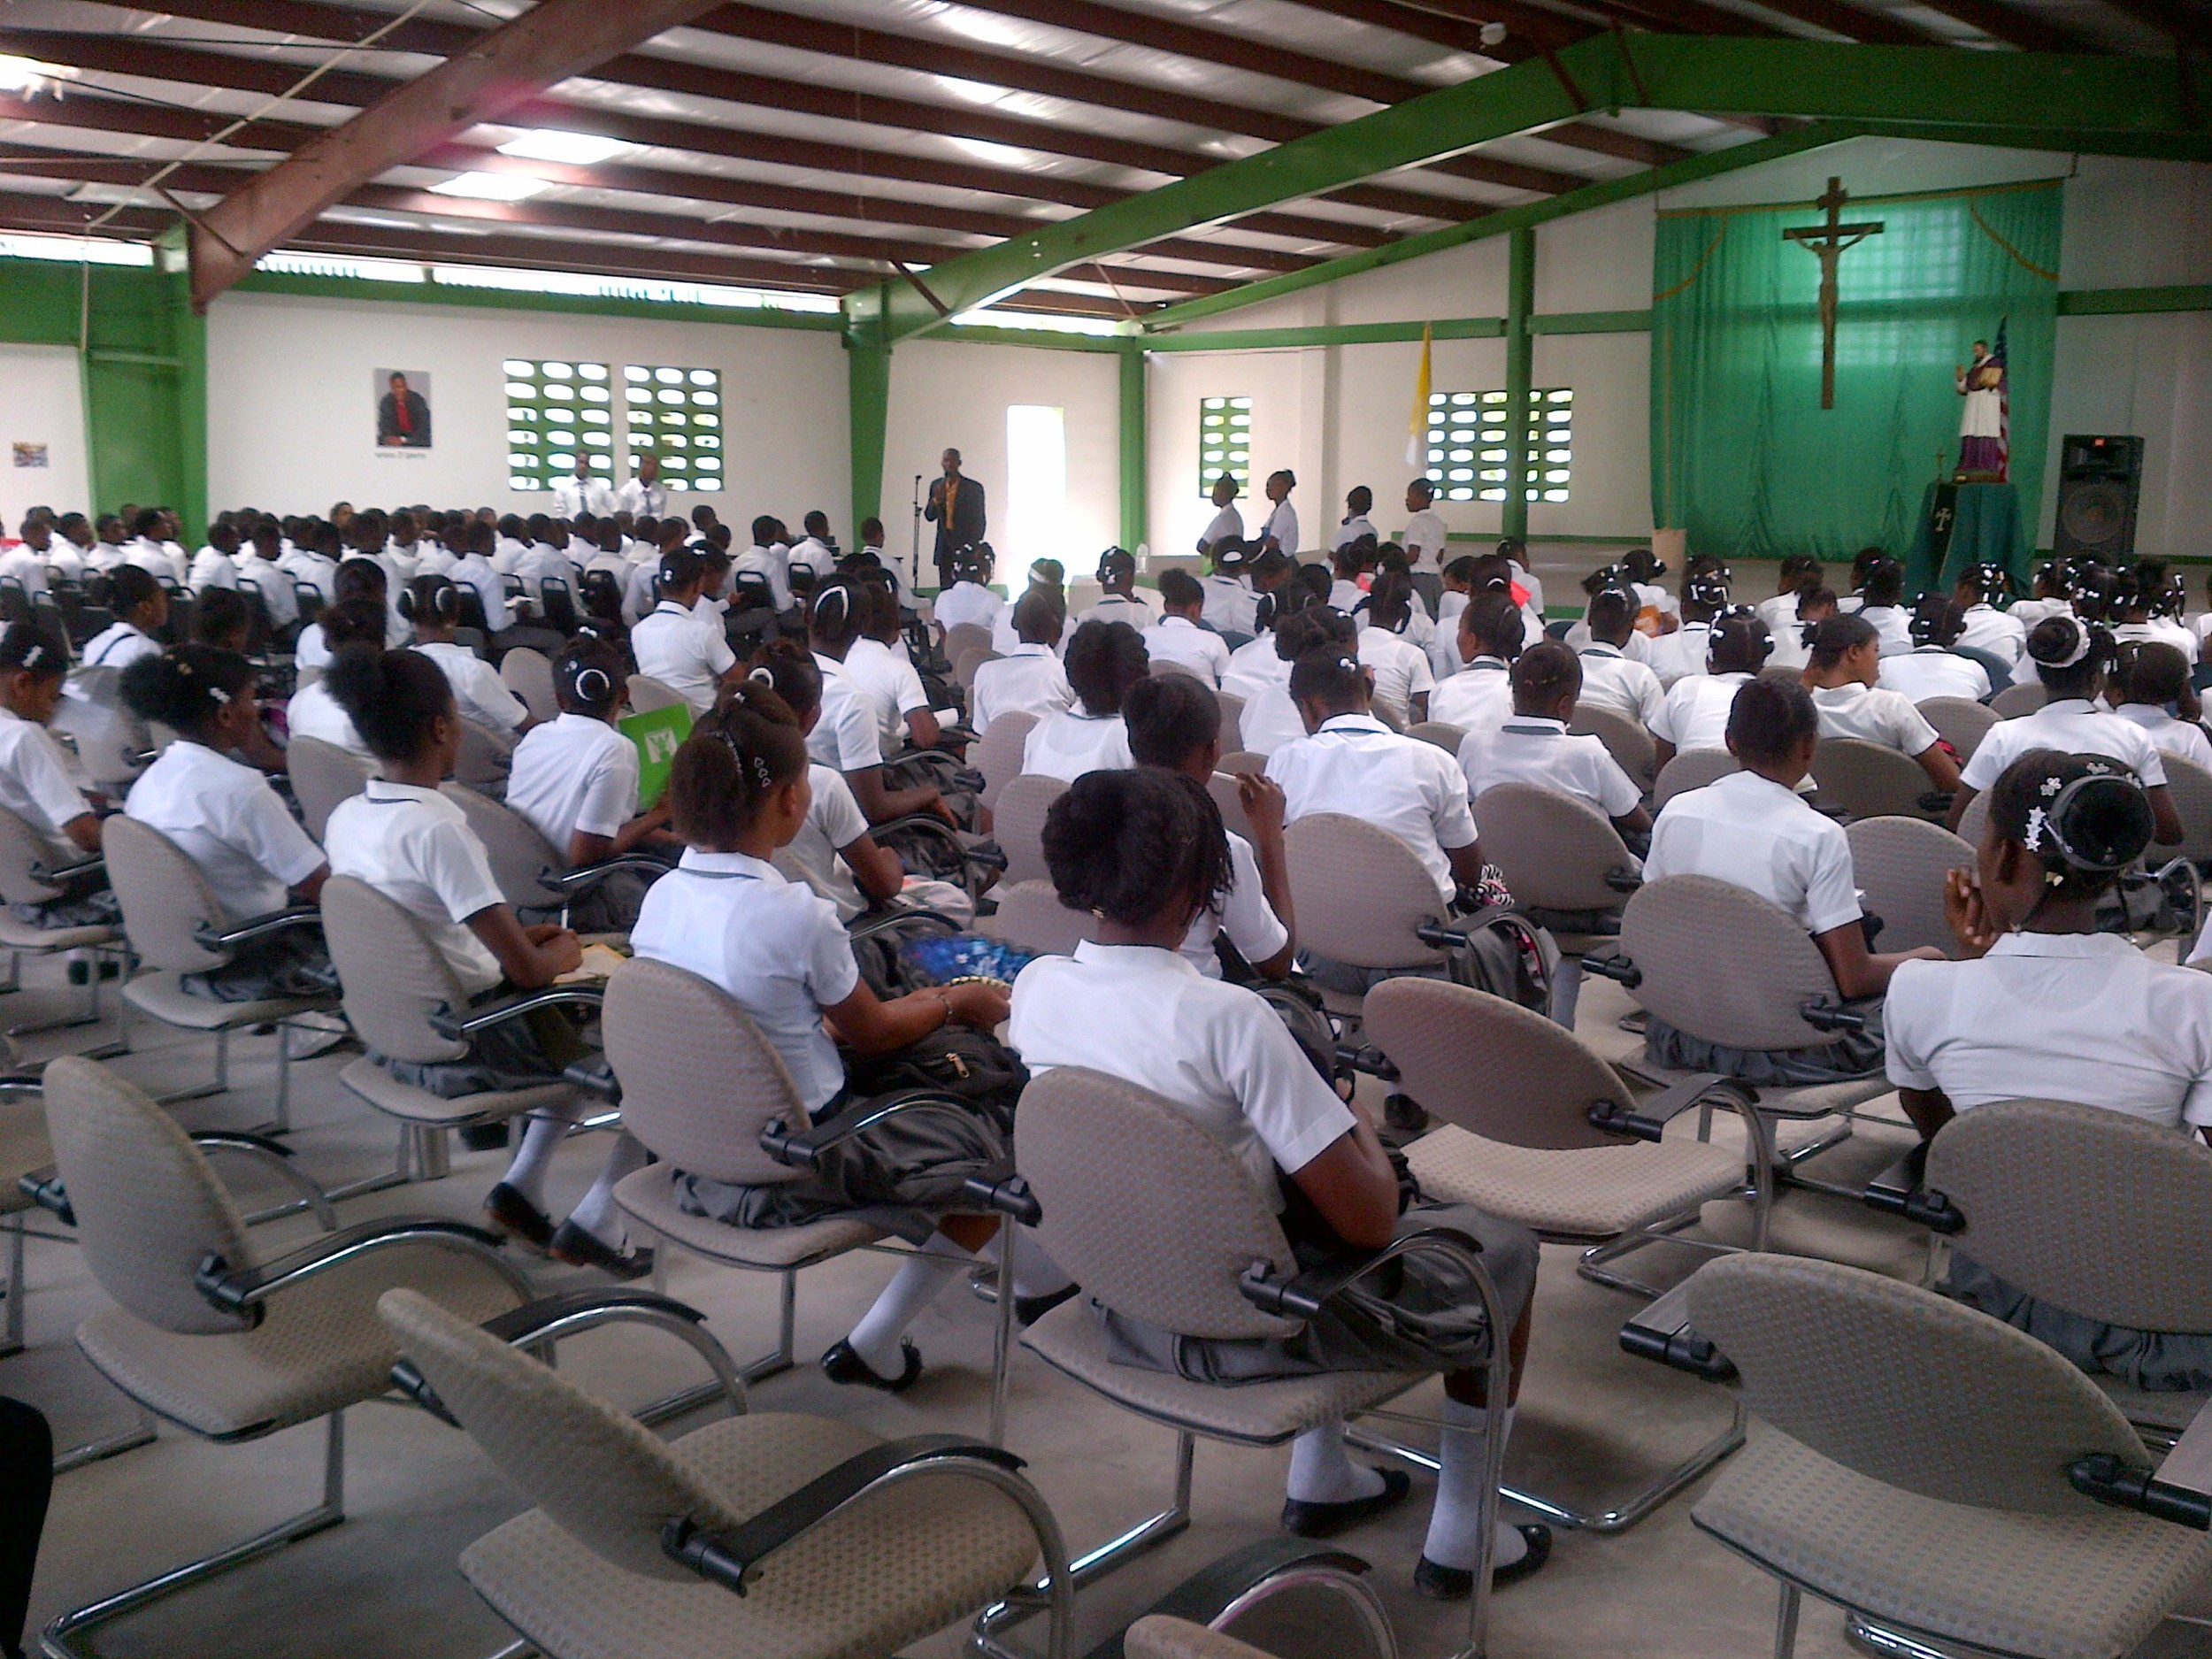 Dr Fanfan holds an assembly for the high school students.